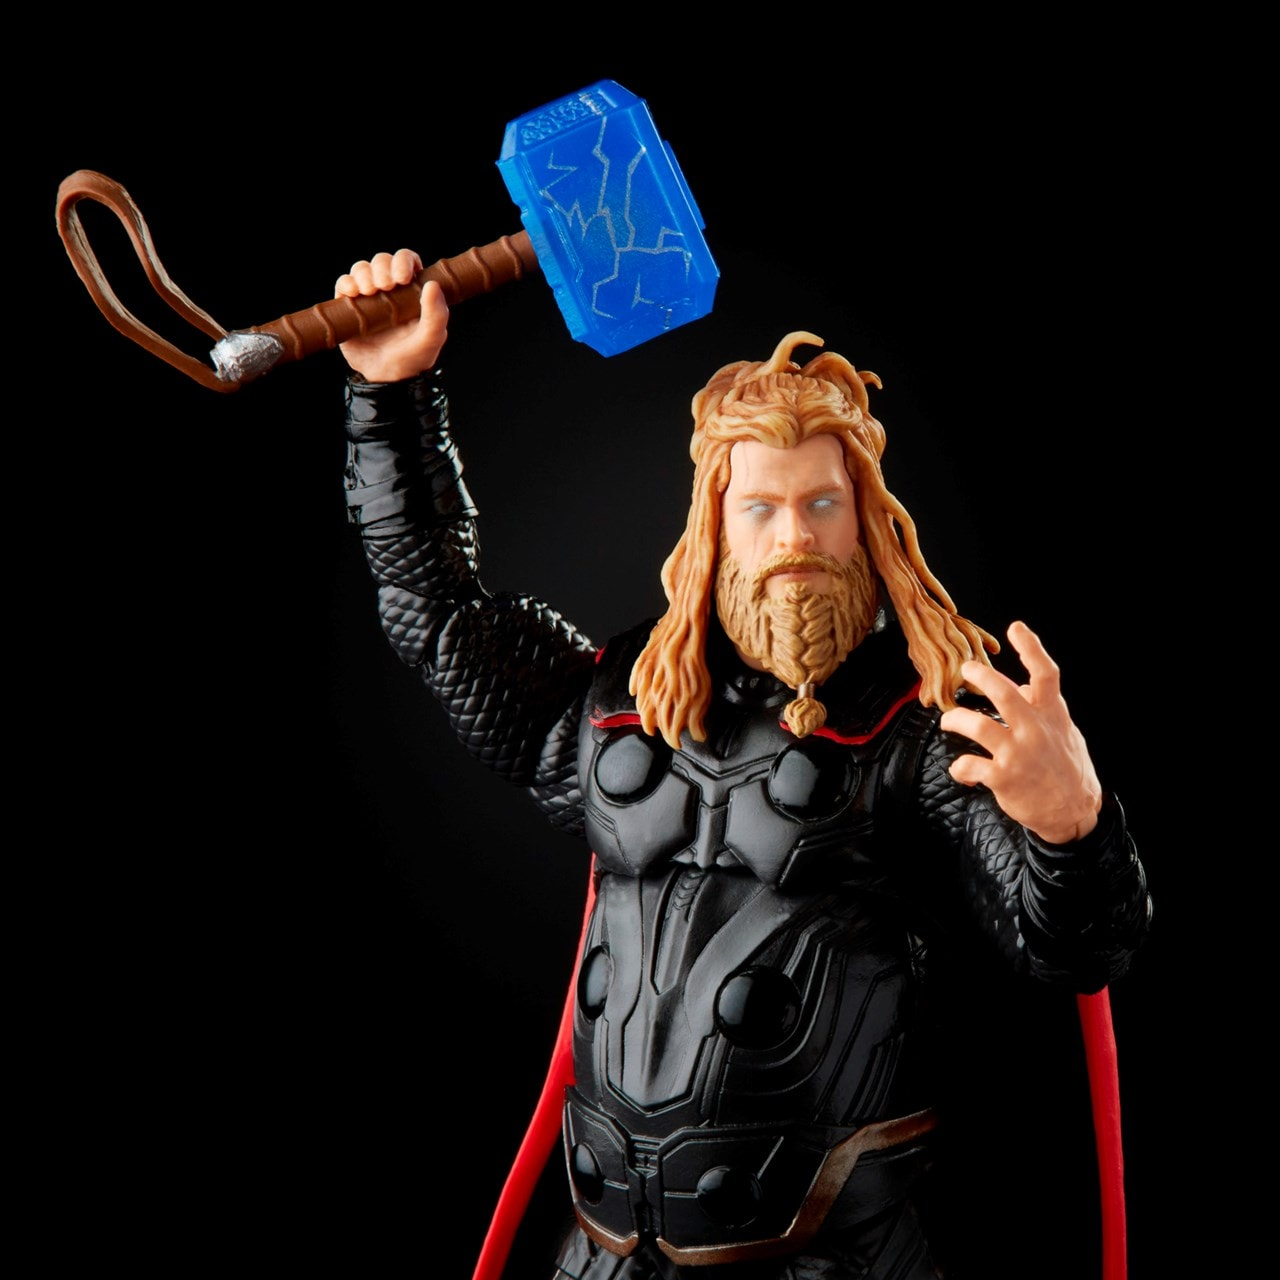 Thor Infinity Saga Marvel Legends Series Action Figure Action Figure Free Shipping Over 20 Hmv Store